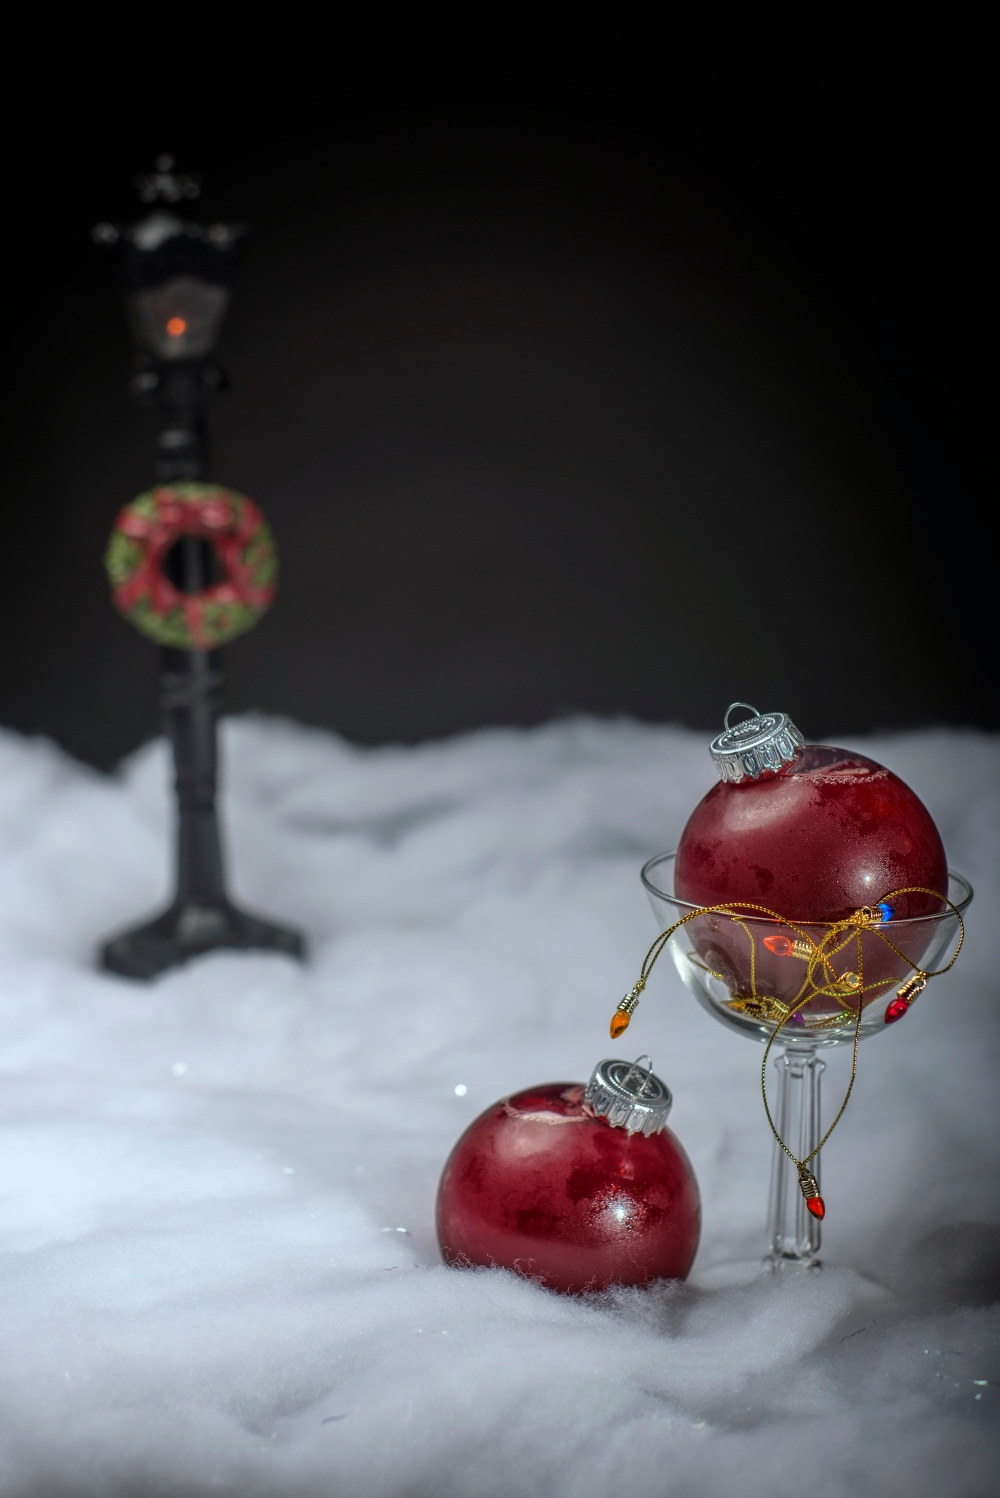 Fallen Ornaments By Josue Romero